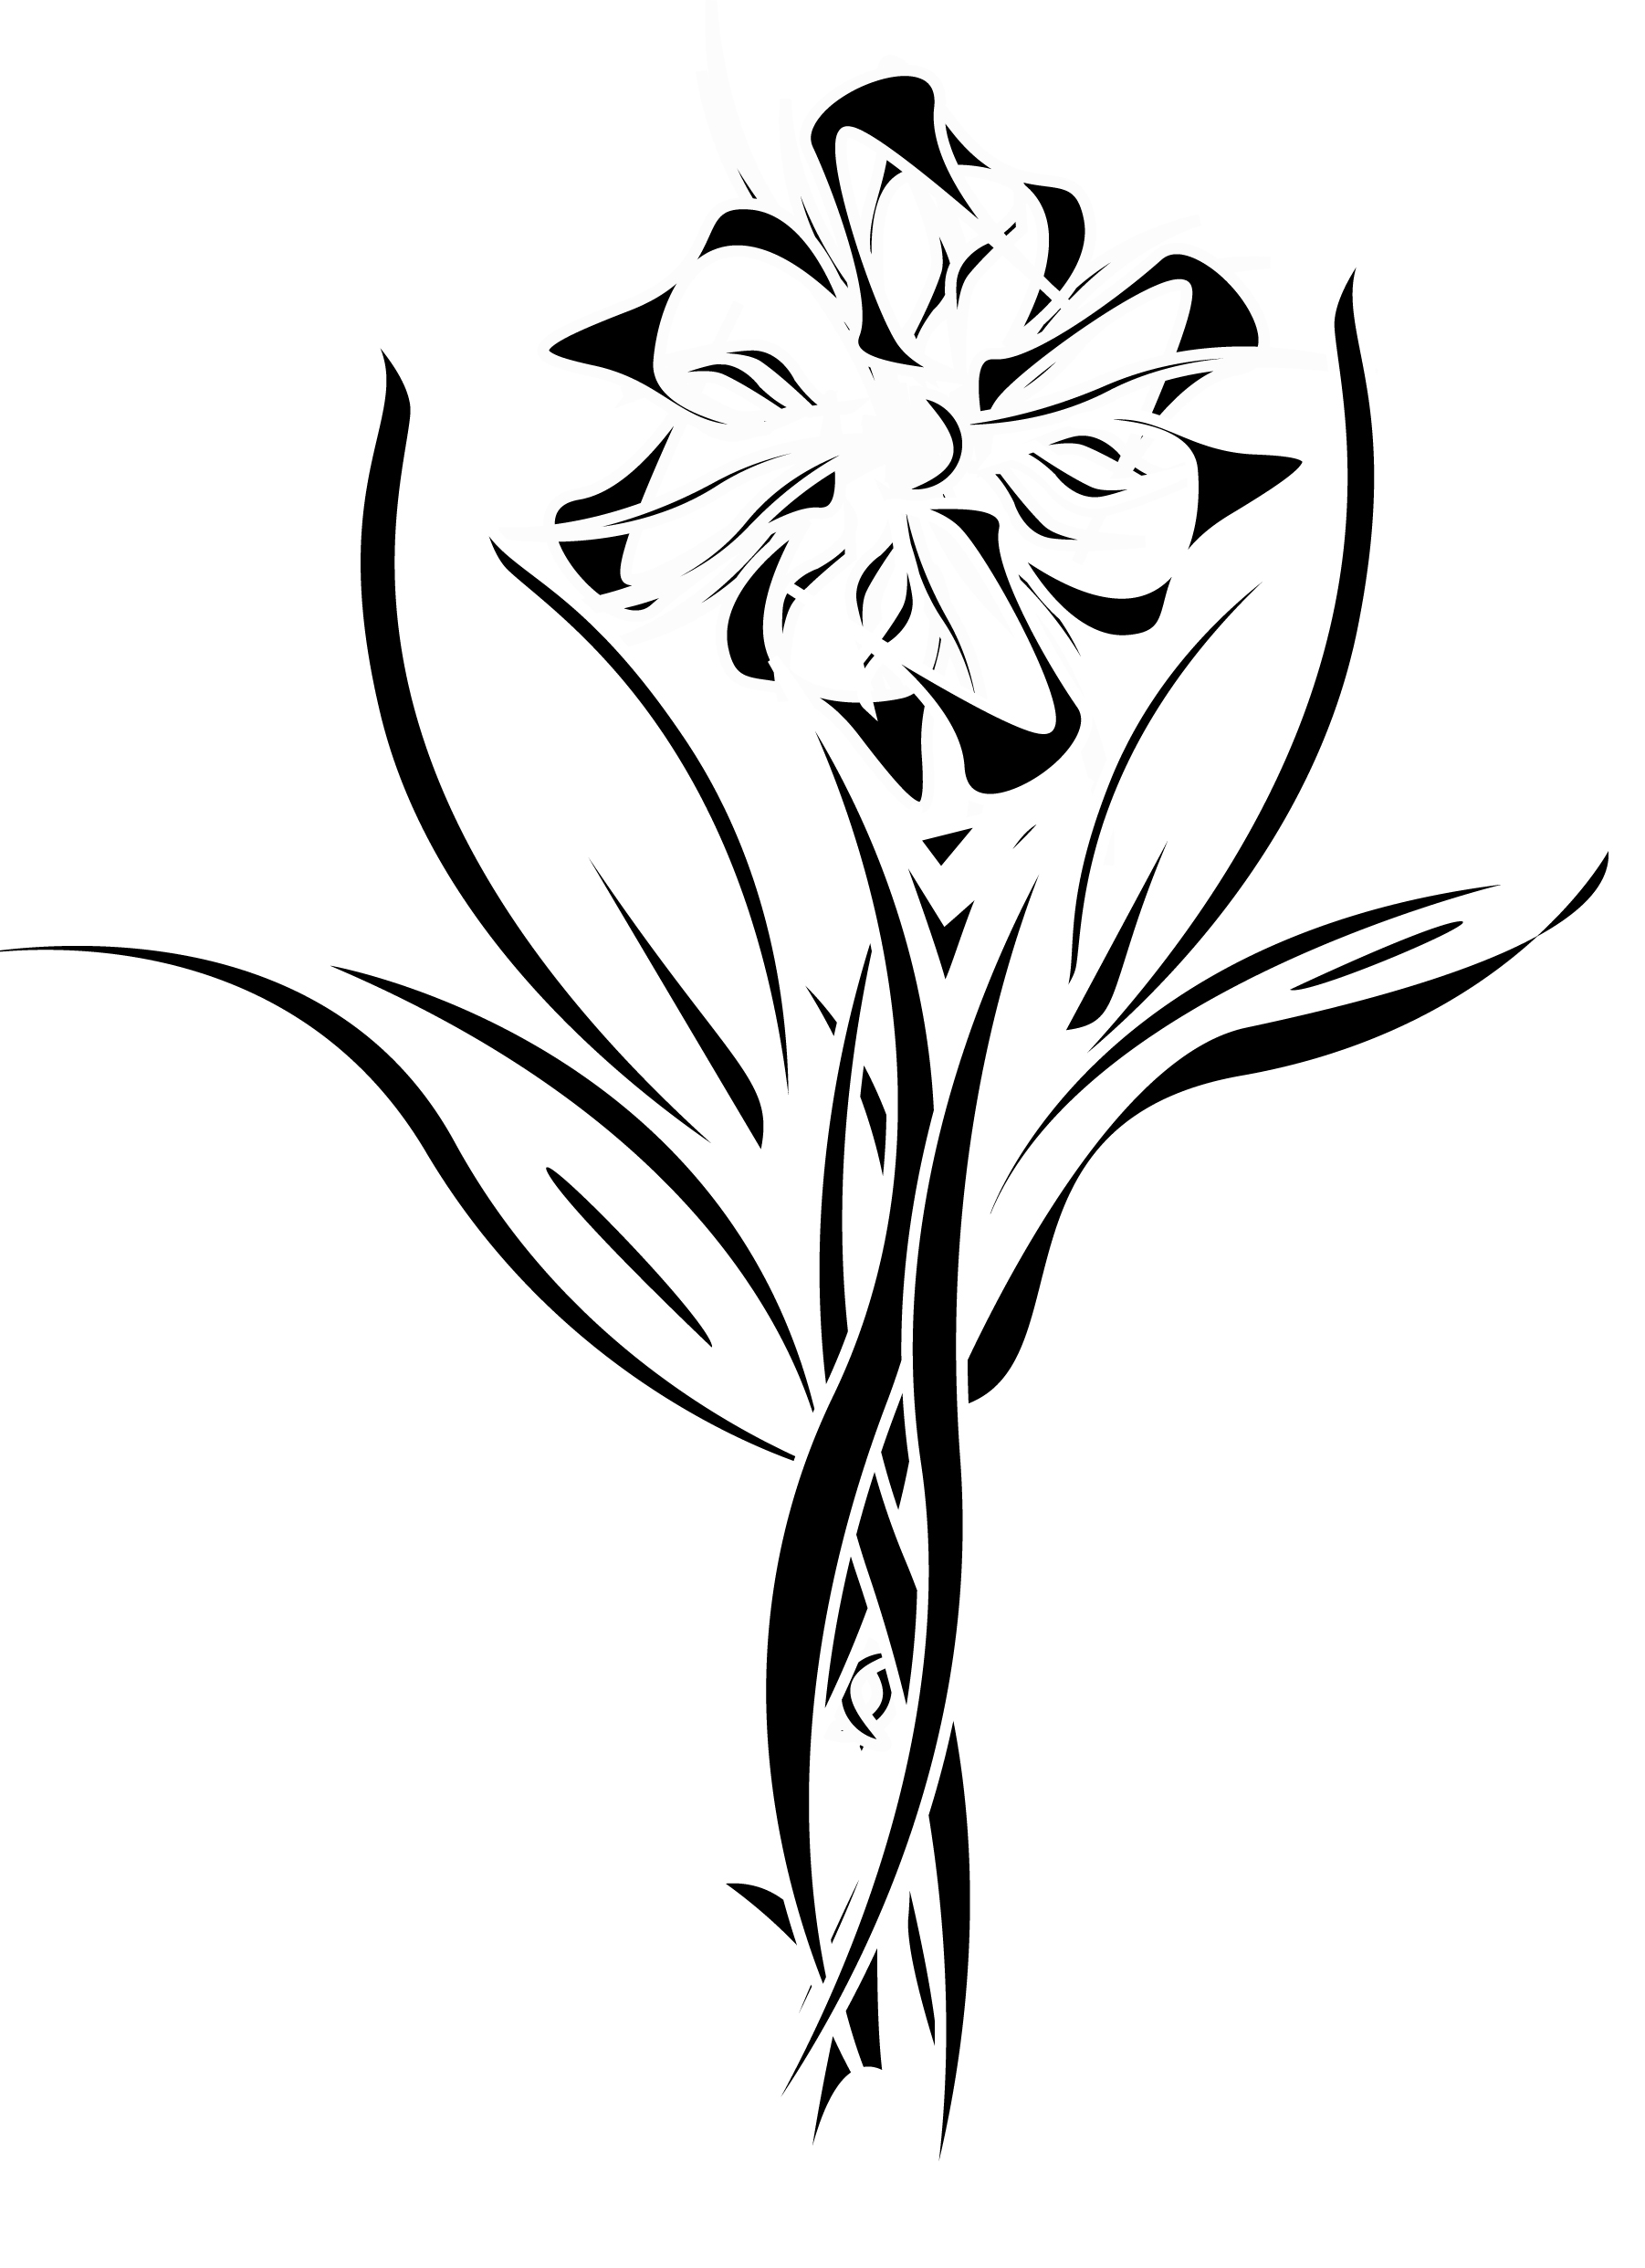 Free Tribal Flowers, Download Free Clip Art, Free Clip Art on.